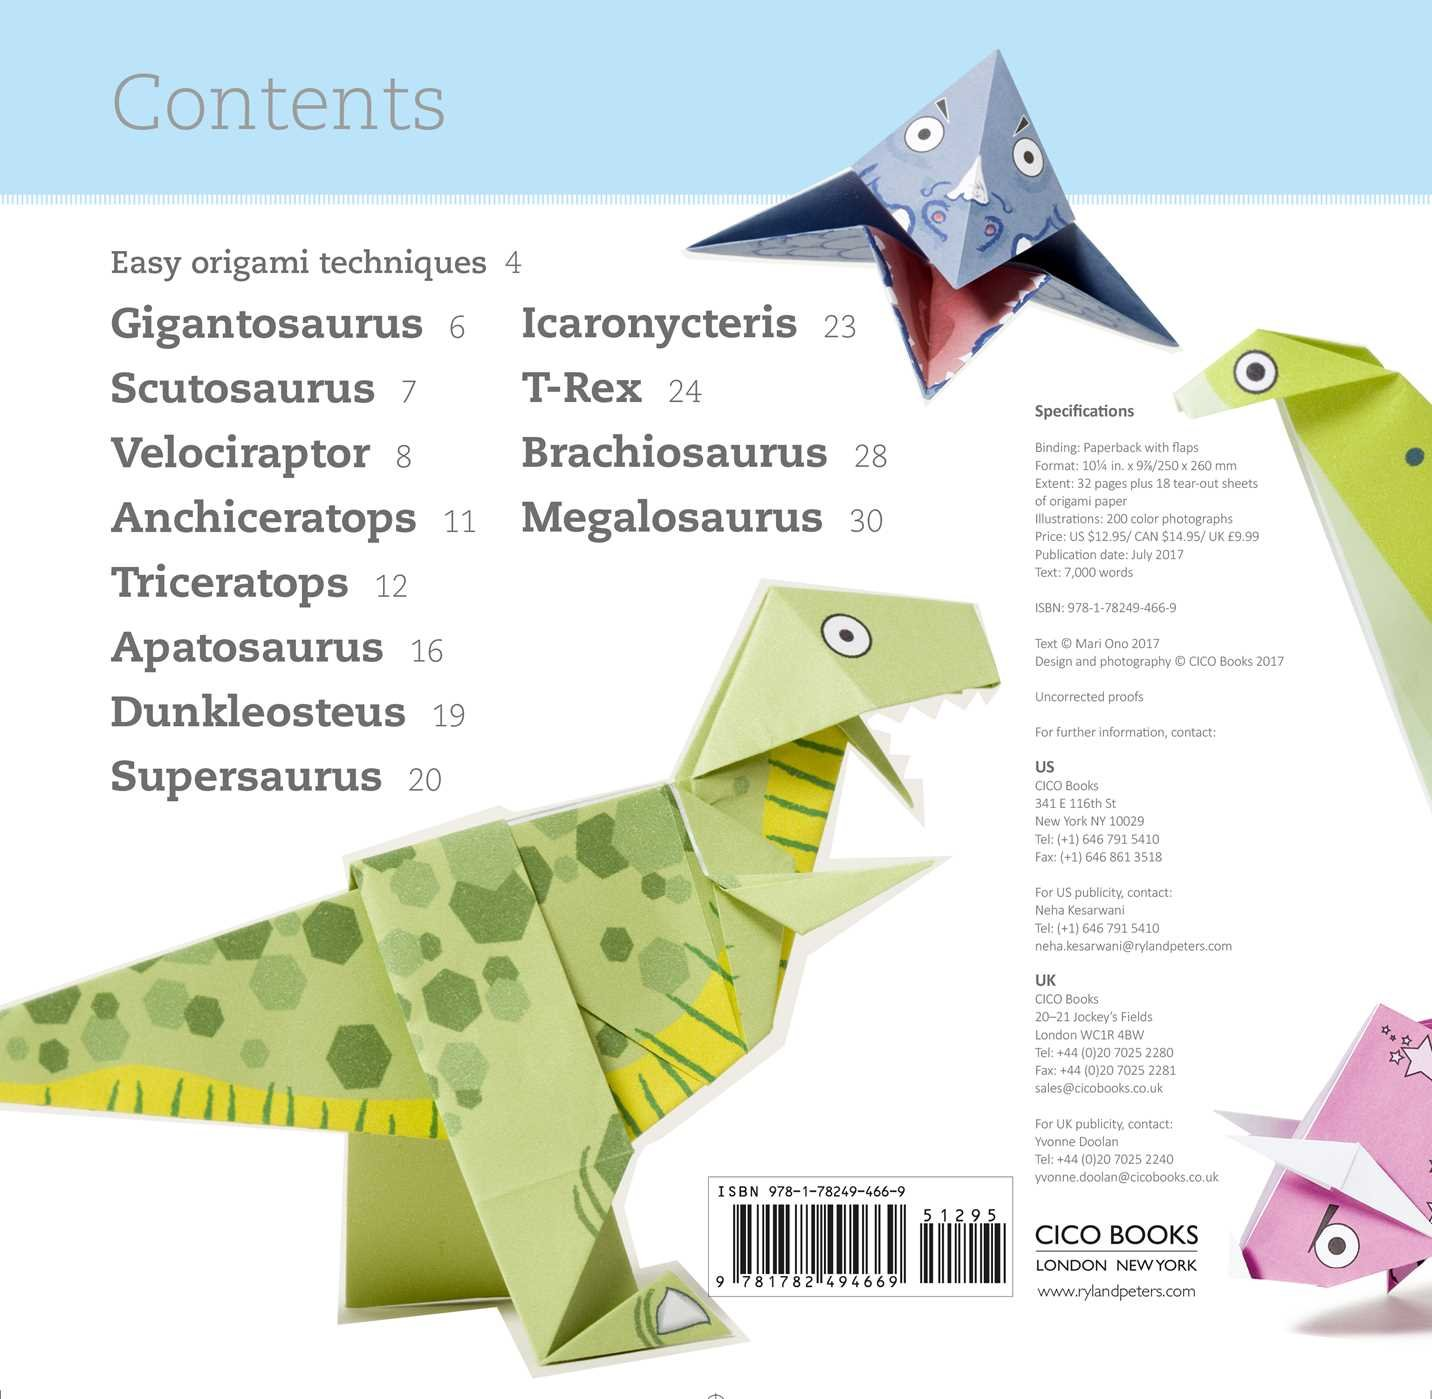 Fun origami for children dino 12 daring dinosaurs to fold mari fun origami for children dino 12 daring dinosaurs to fold mari ono hiroaki takai 9781782494669 amazon books jeuxipadfo Gallery